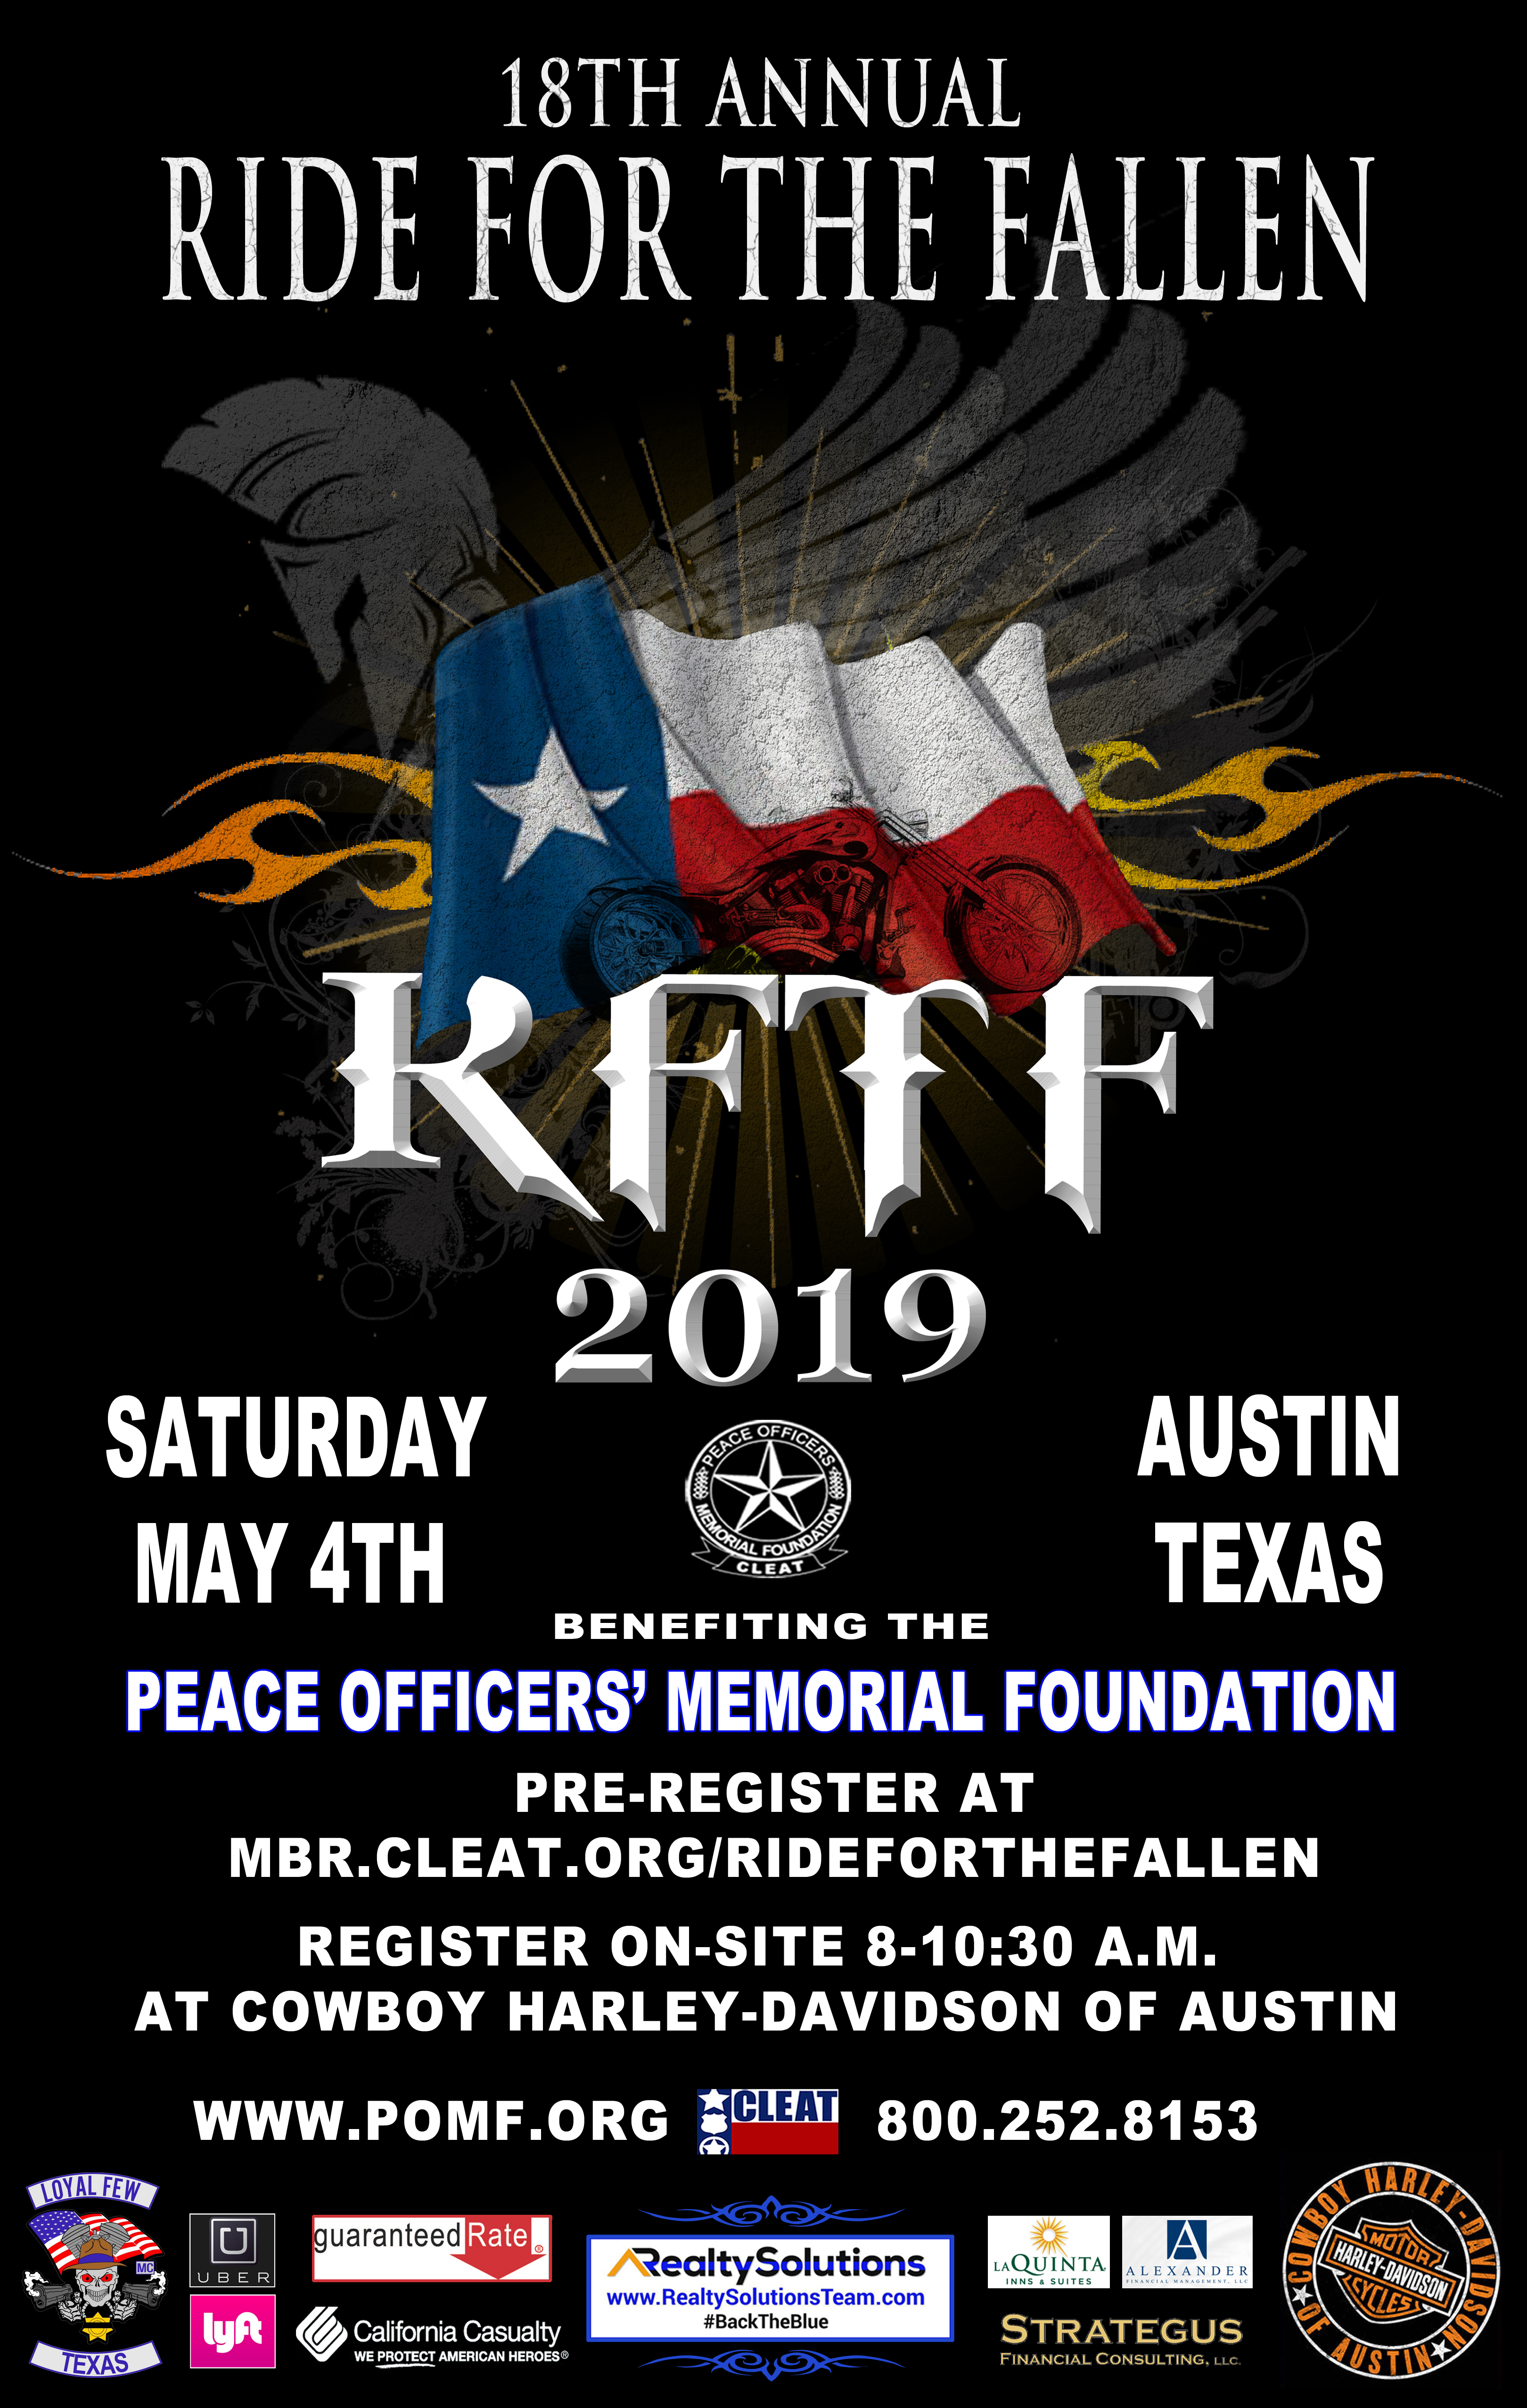 18th Annual Ride for the Fallen